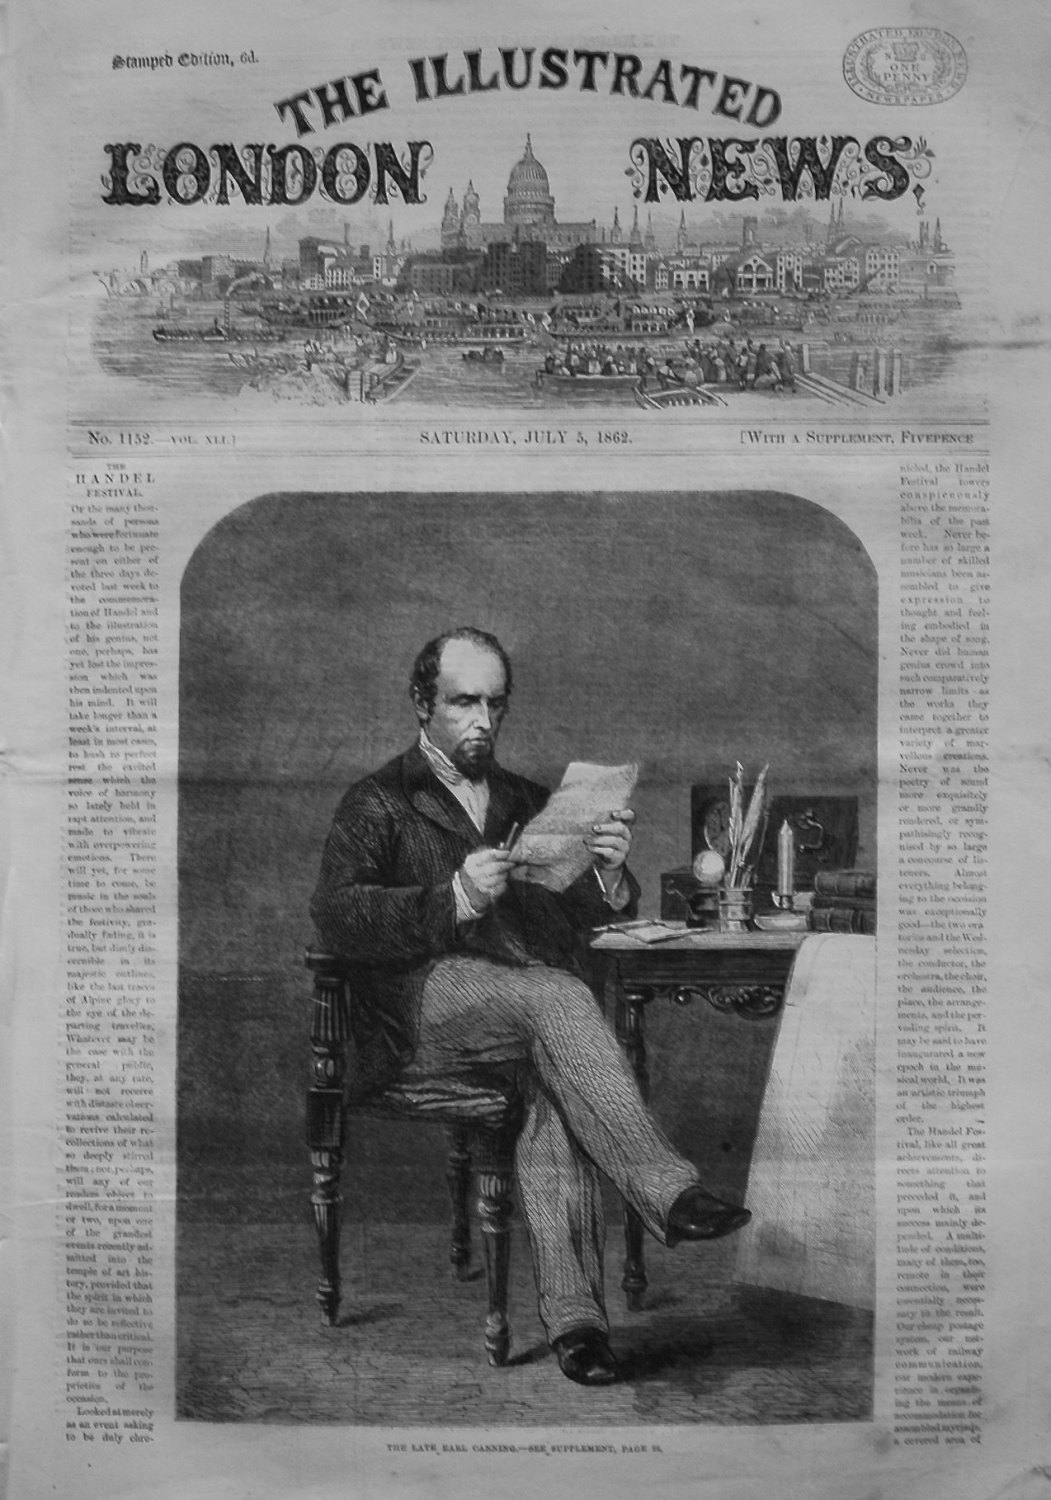 Illustrated London News, July 5th 1862.